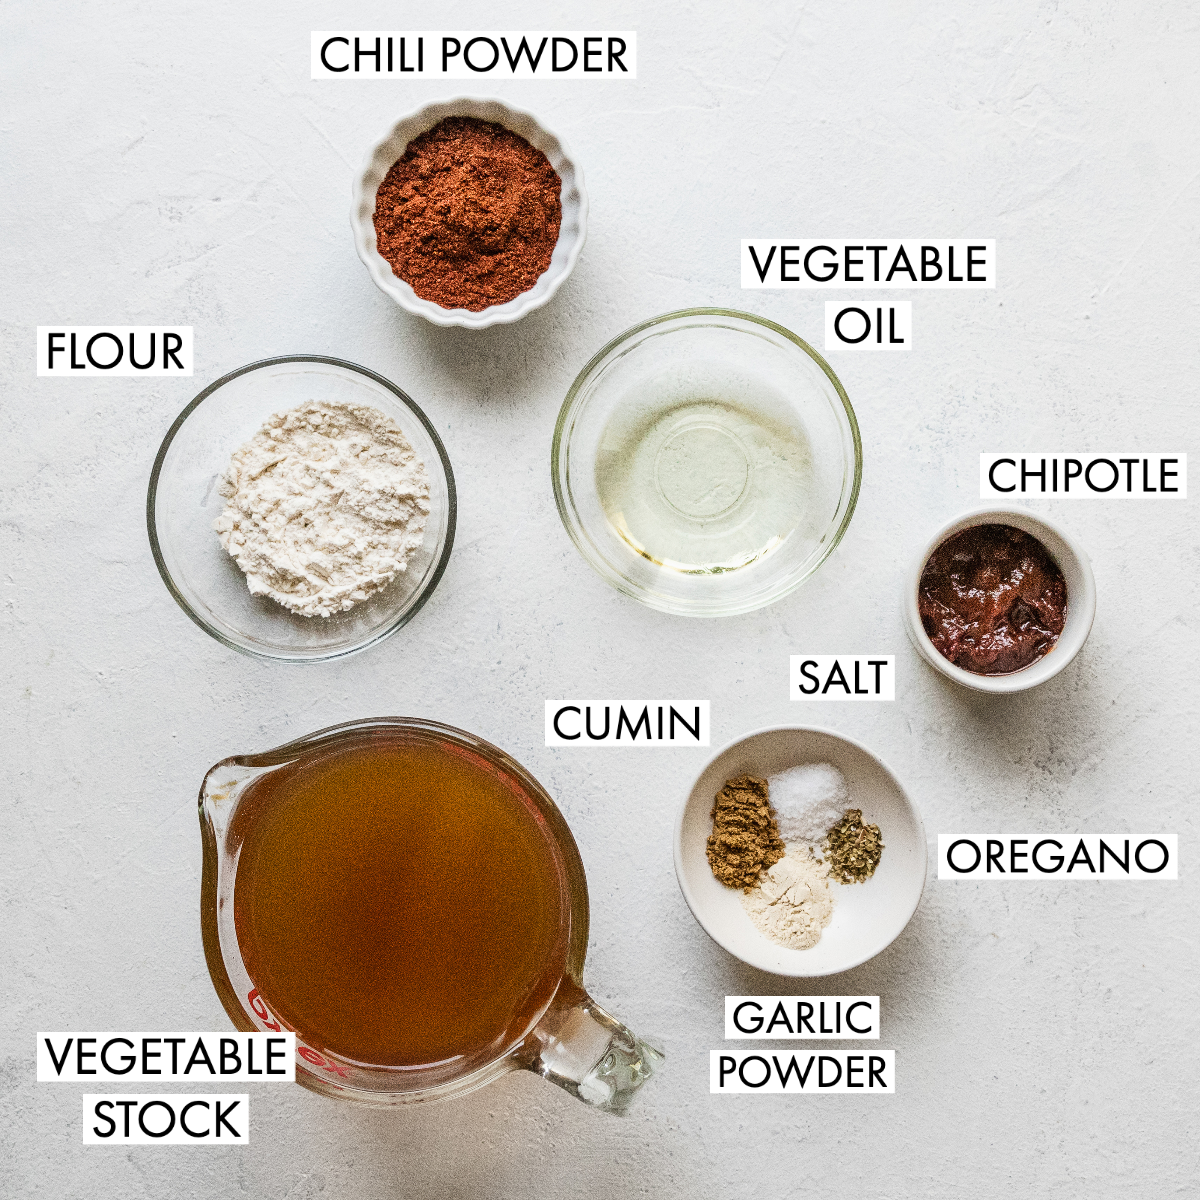 image of ingredients for chipotle enchilada sauce